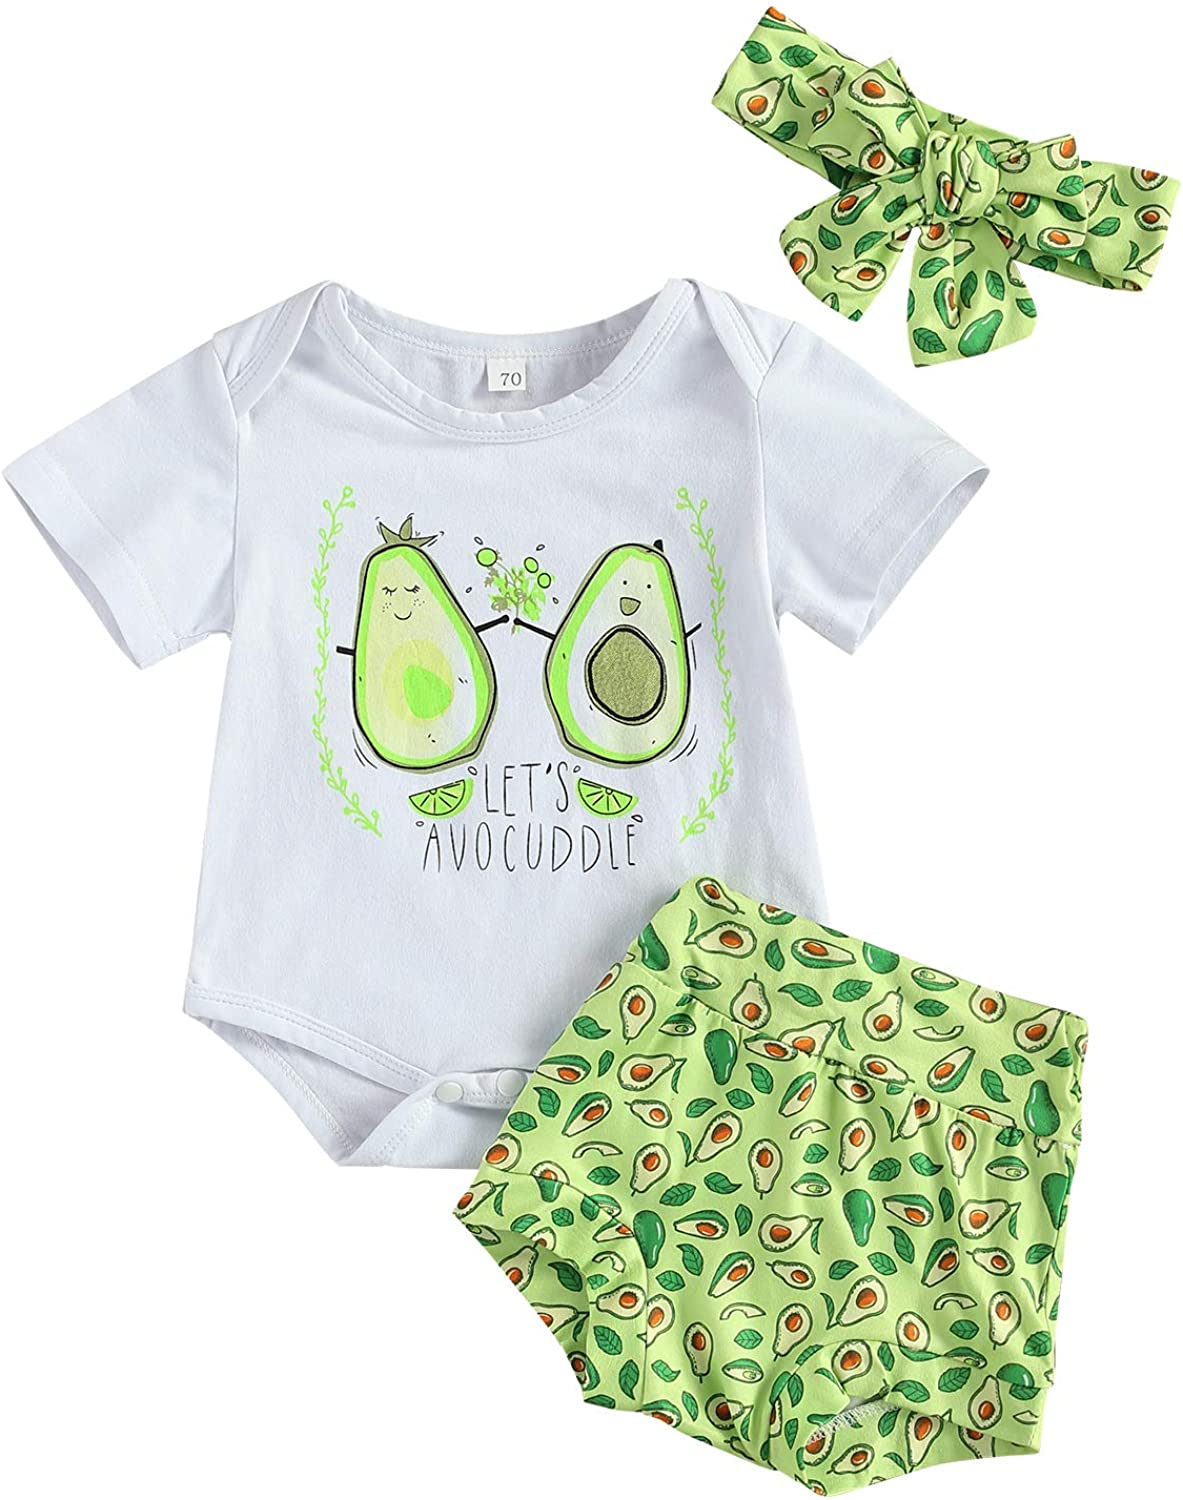 Infant Baby Girl Summer Clothes Shorts Set Newborn Short Sleeve Romper Bodysuit Letter Printed Top+Headband 3 Pcs Outfits